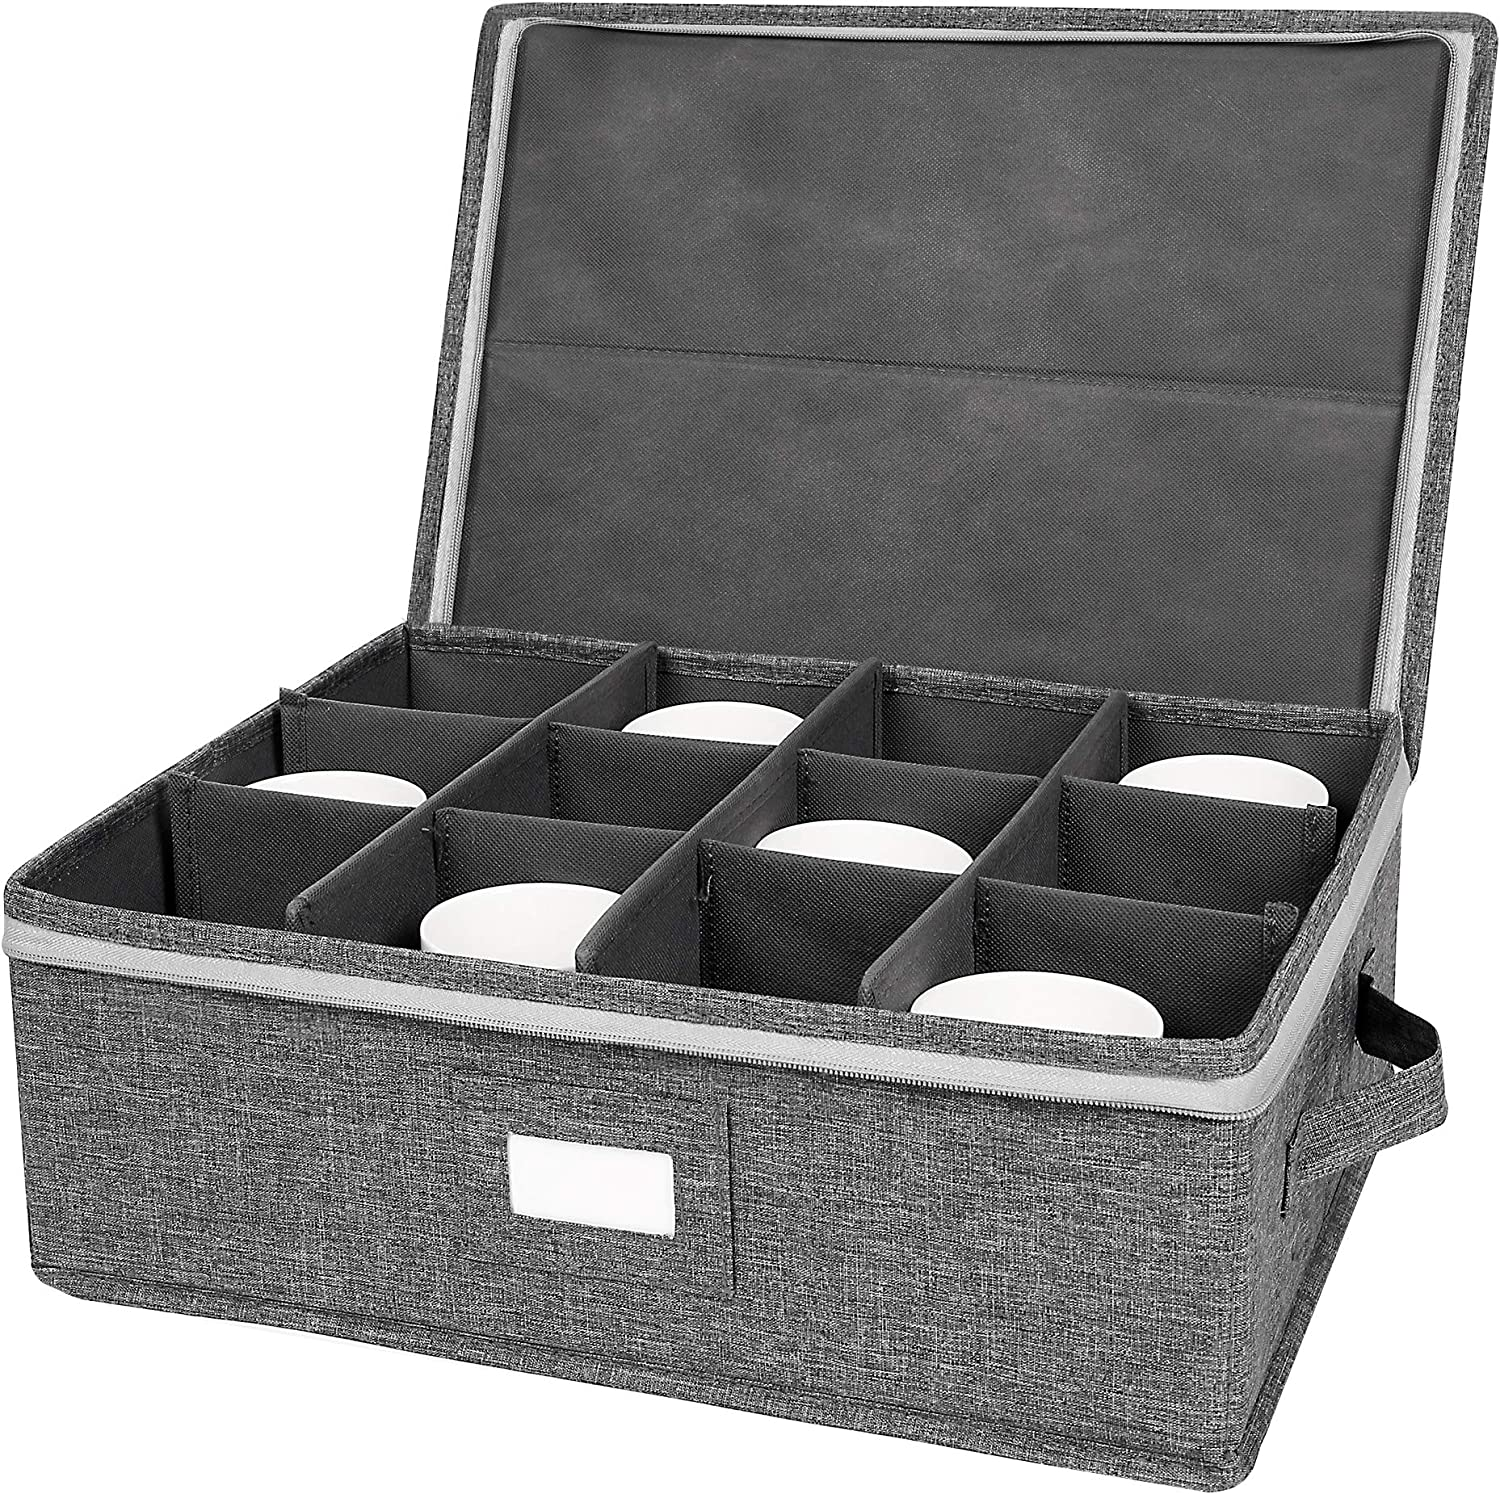 Coffee Cup Mug Storage Box Divider unisex Container with OFFicial Org Drinkware